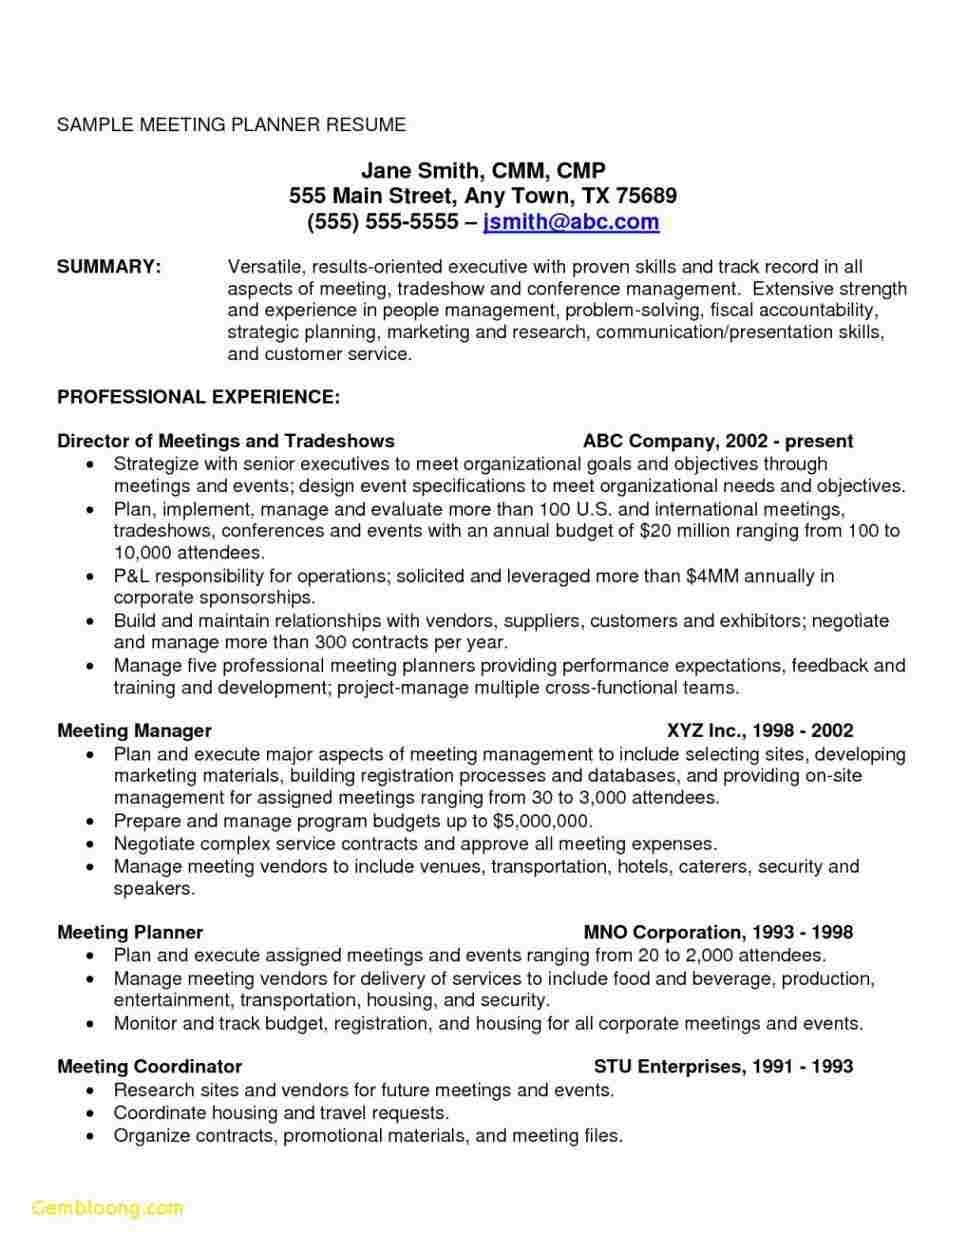 65 Cool Collection Of Sample Resume Onsite Experience Meeting Planner Event Planning Jobs Event Planner Resume